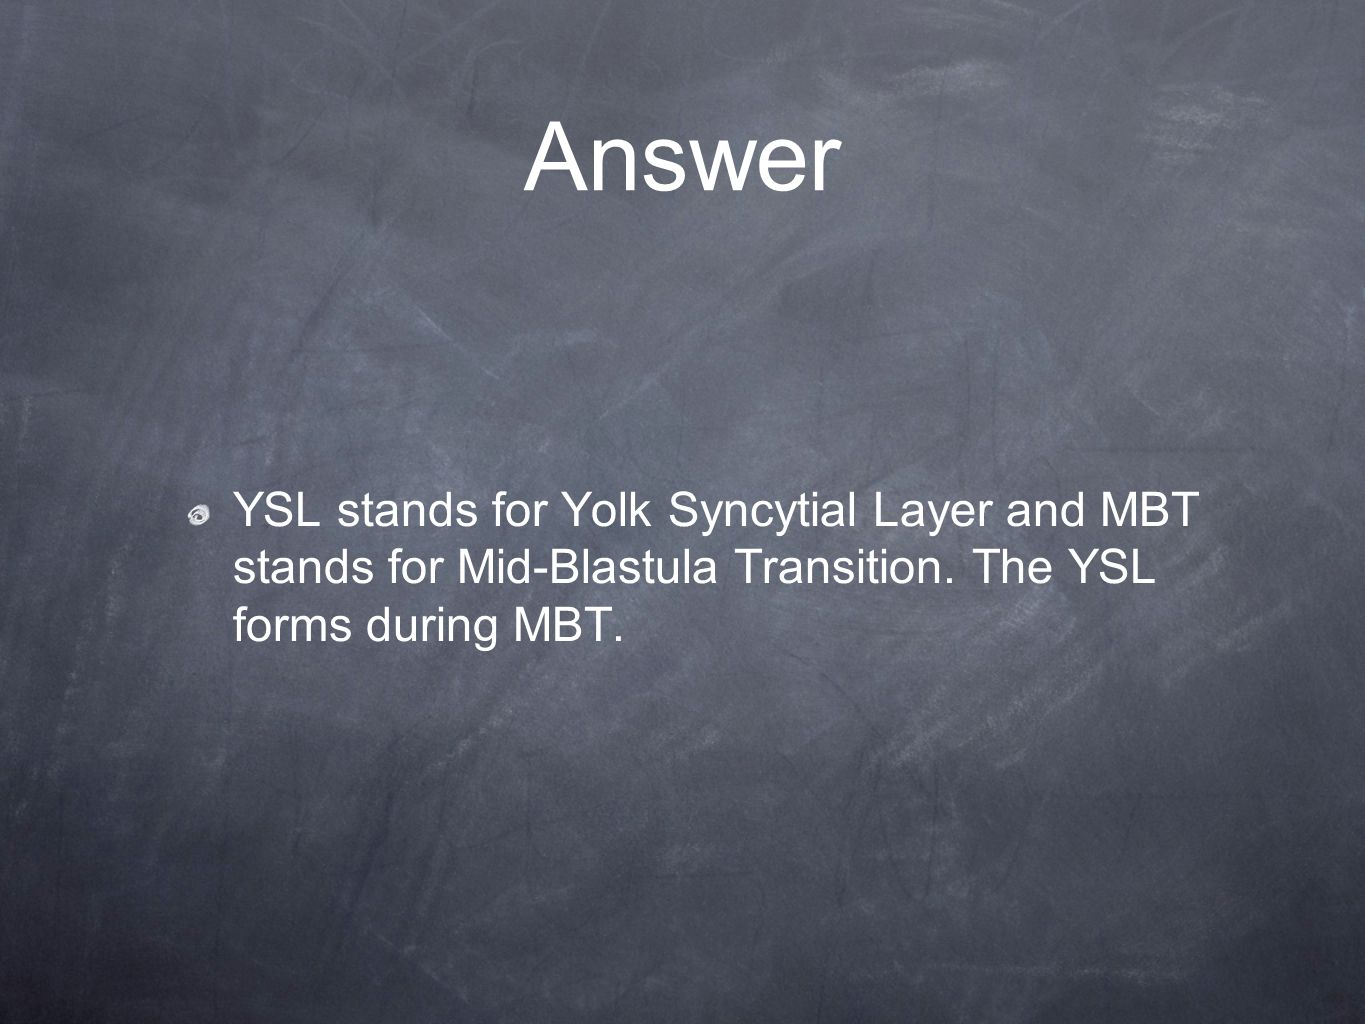 Answer YSL stands for Yolk Syncytial Layer and MBT stands for Mid-Blastula Transition.